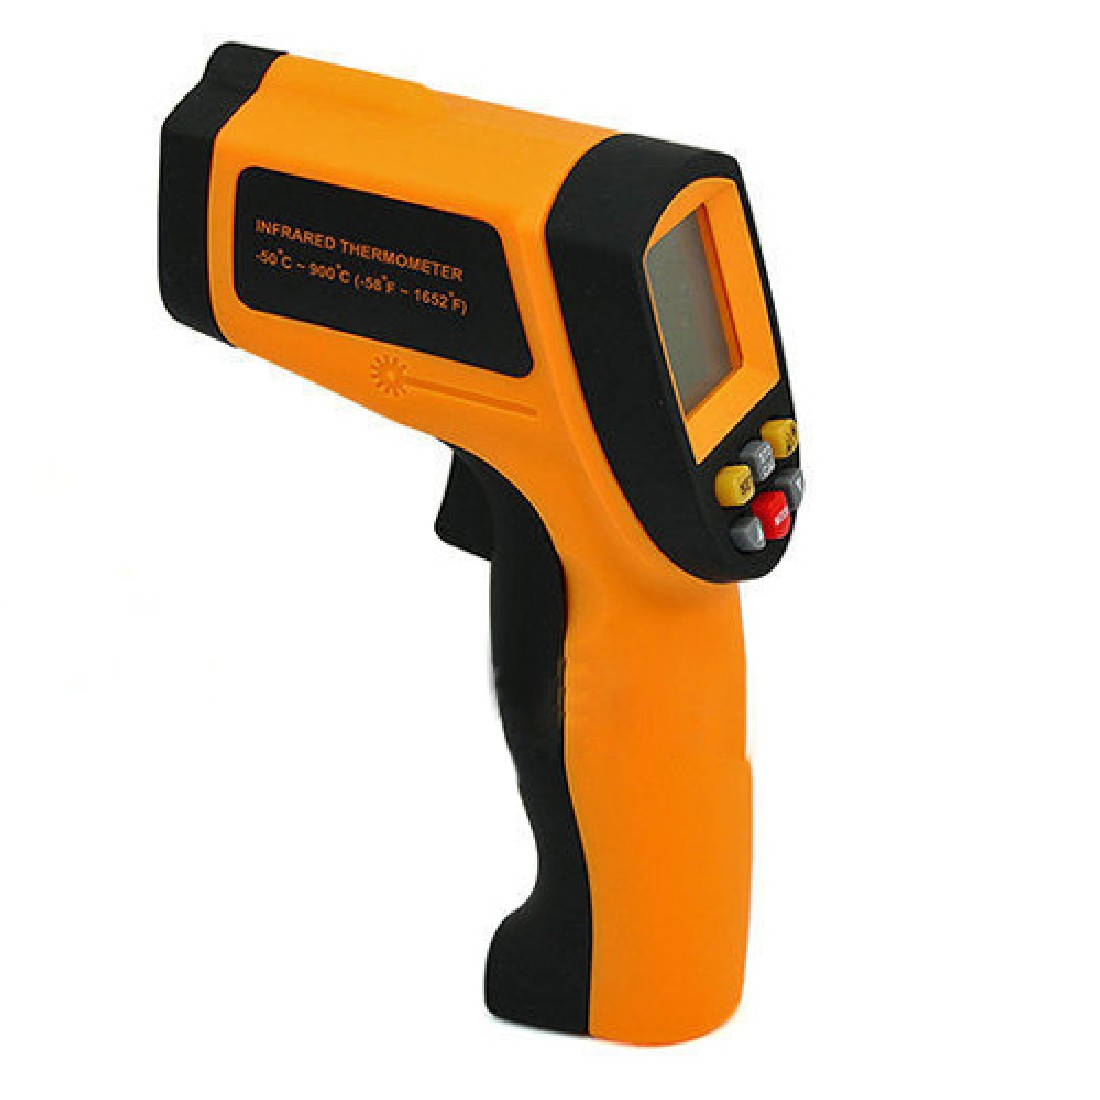 IR Infrared Thermometer GM900 Digital Temperature Meter -50~950C/ -58~1742F Pyrometer 0.1~1EM Celsius Termometro Infravermelho 55 125 celsius degrees red led digital car thermometer temperature meter ds18b20 sensor page 1